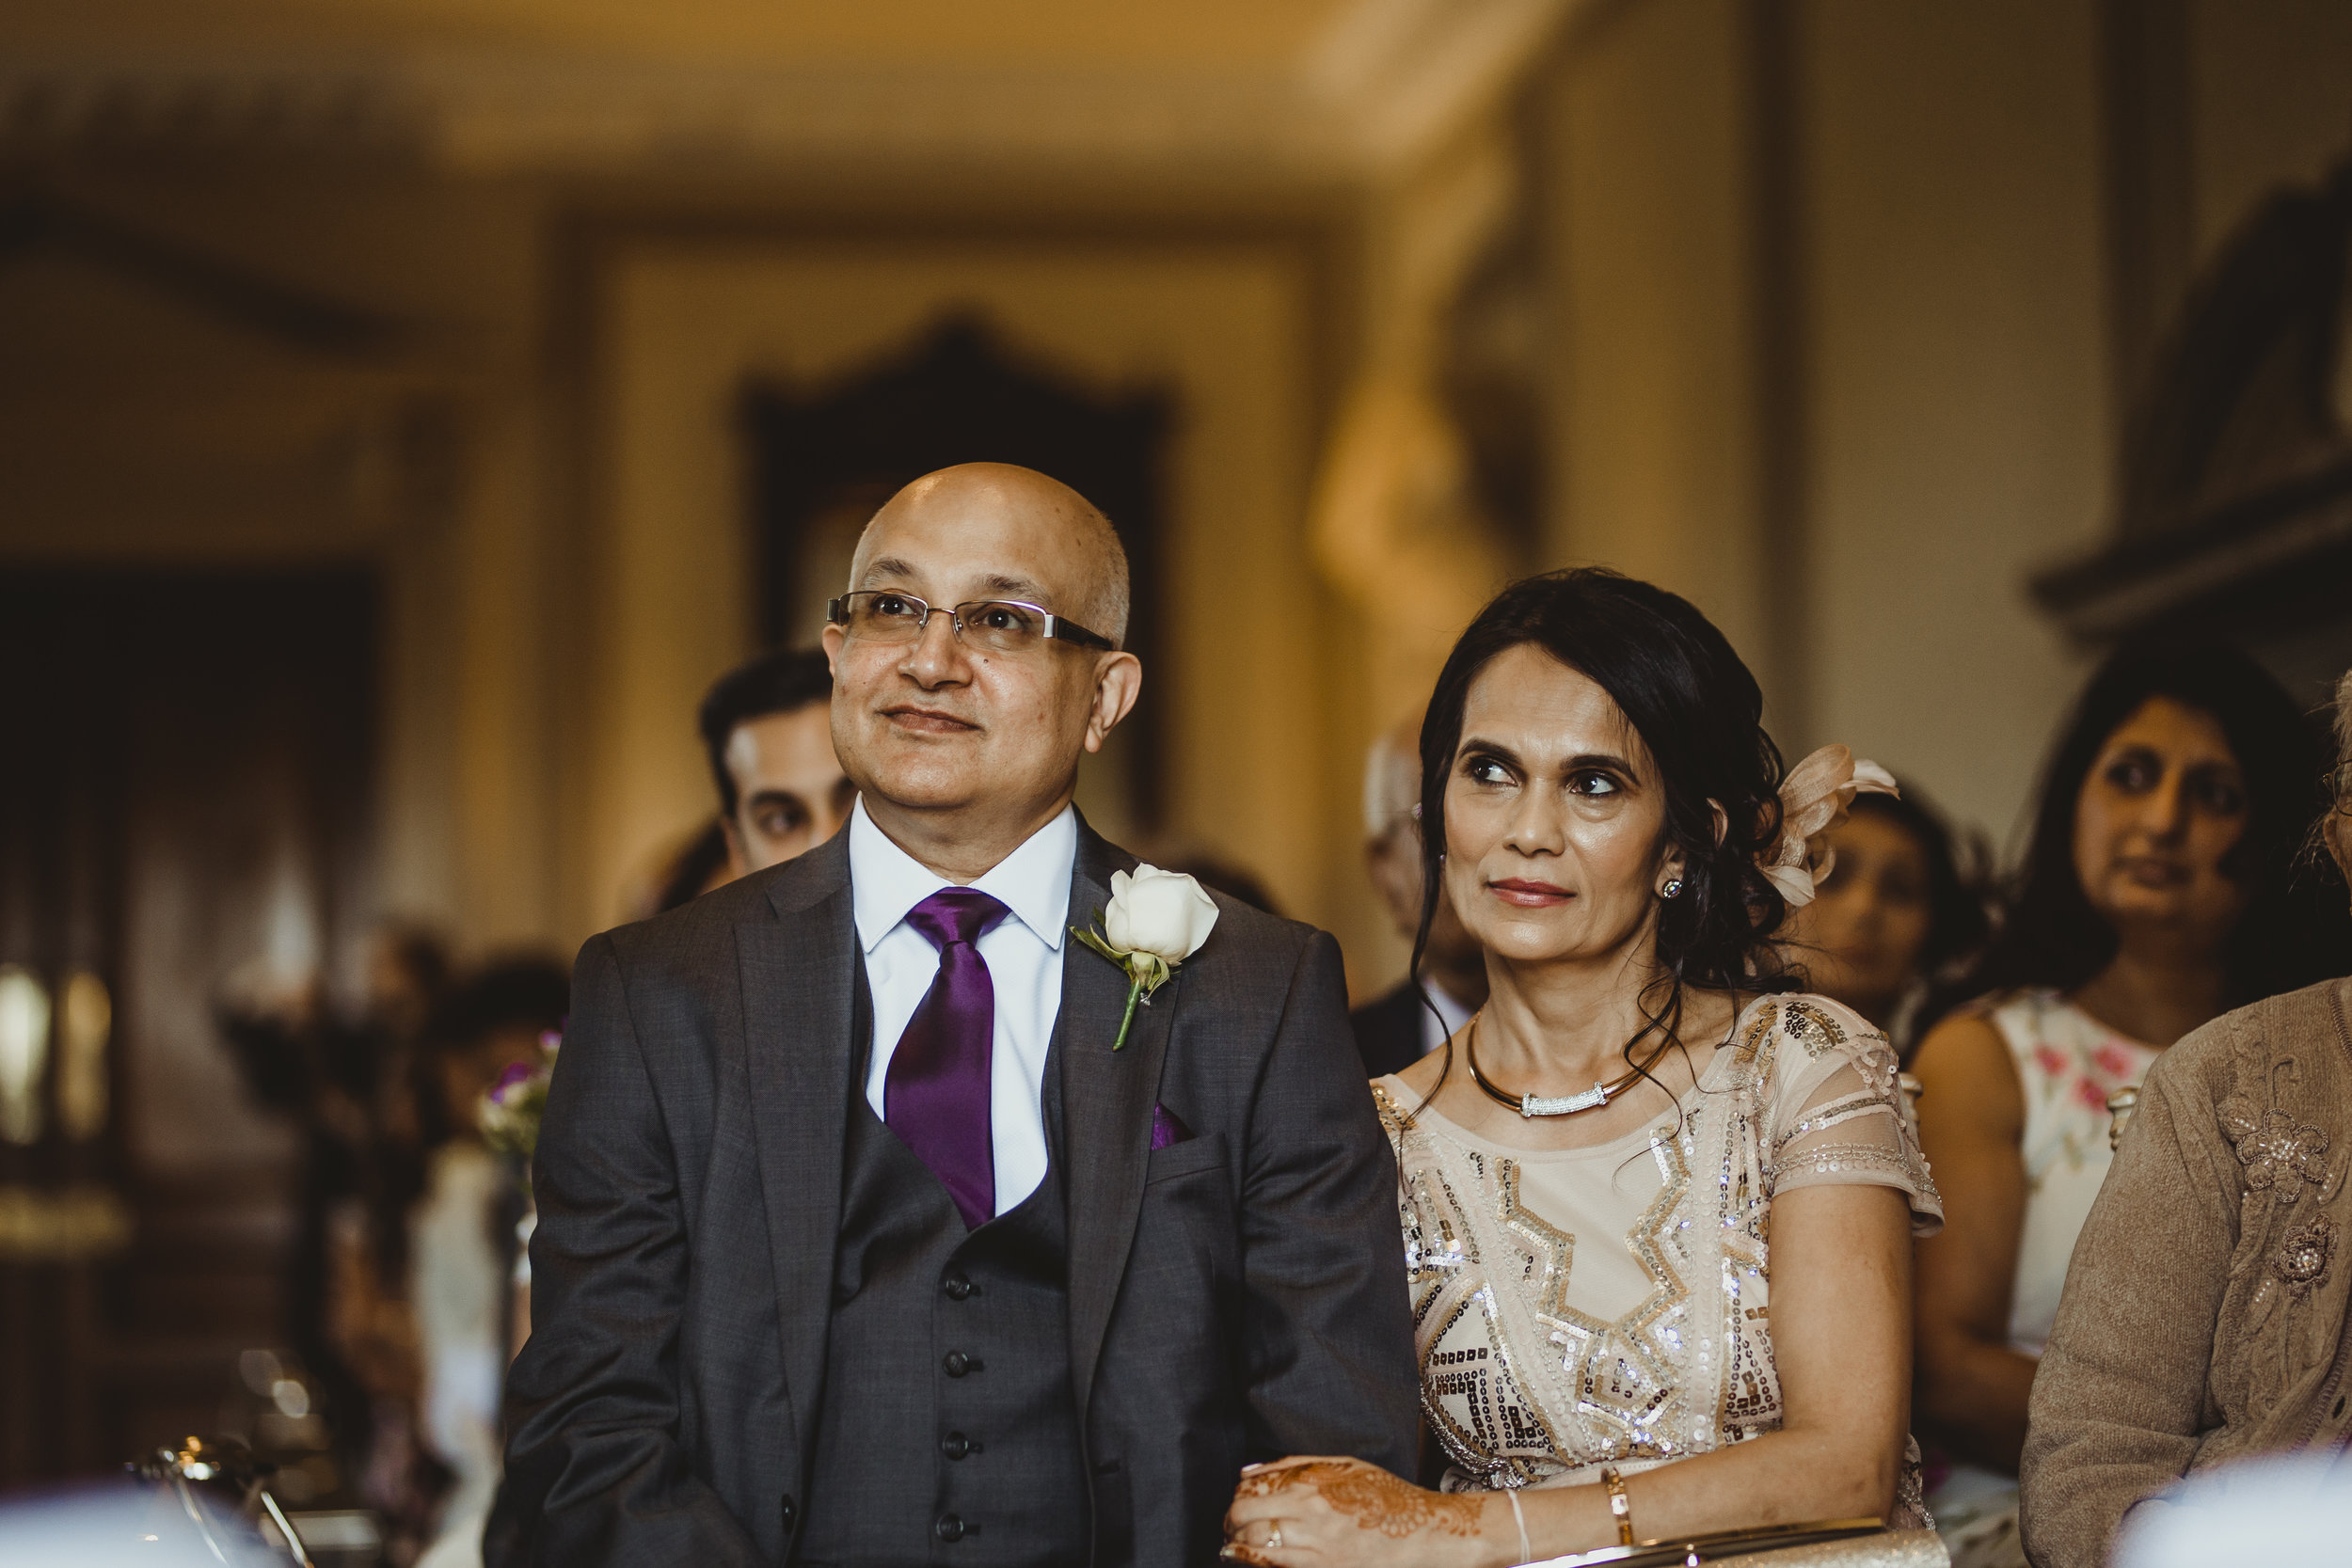 N&J_MILTON_KEYNES_WEDDING_LONDON_PHOTOGRAPHER_ASIAN_WEDDING-361.JPG